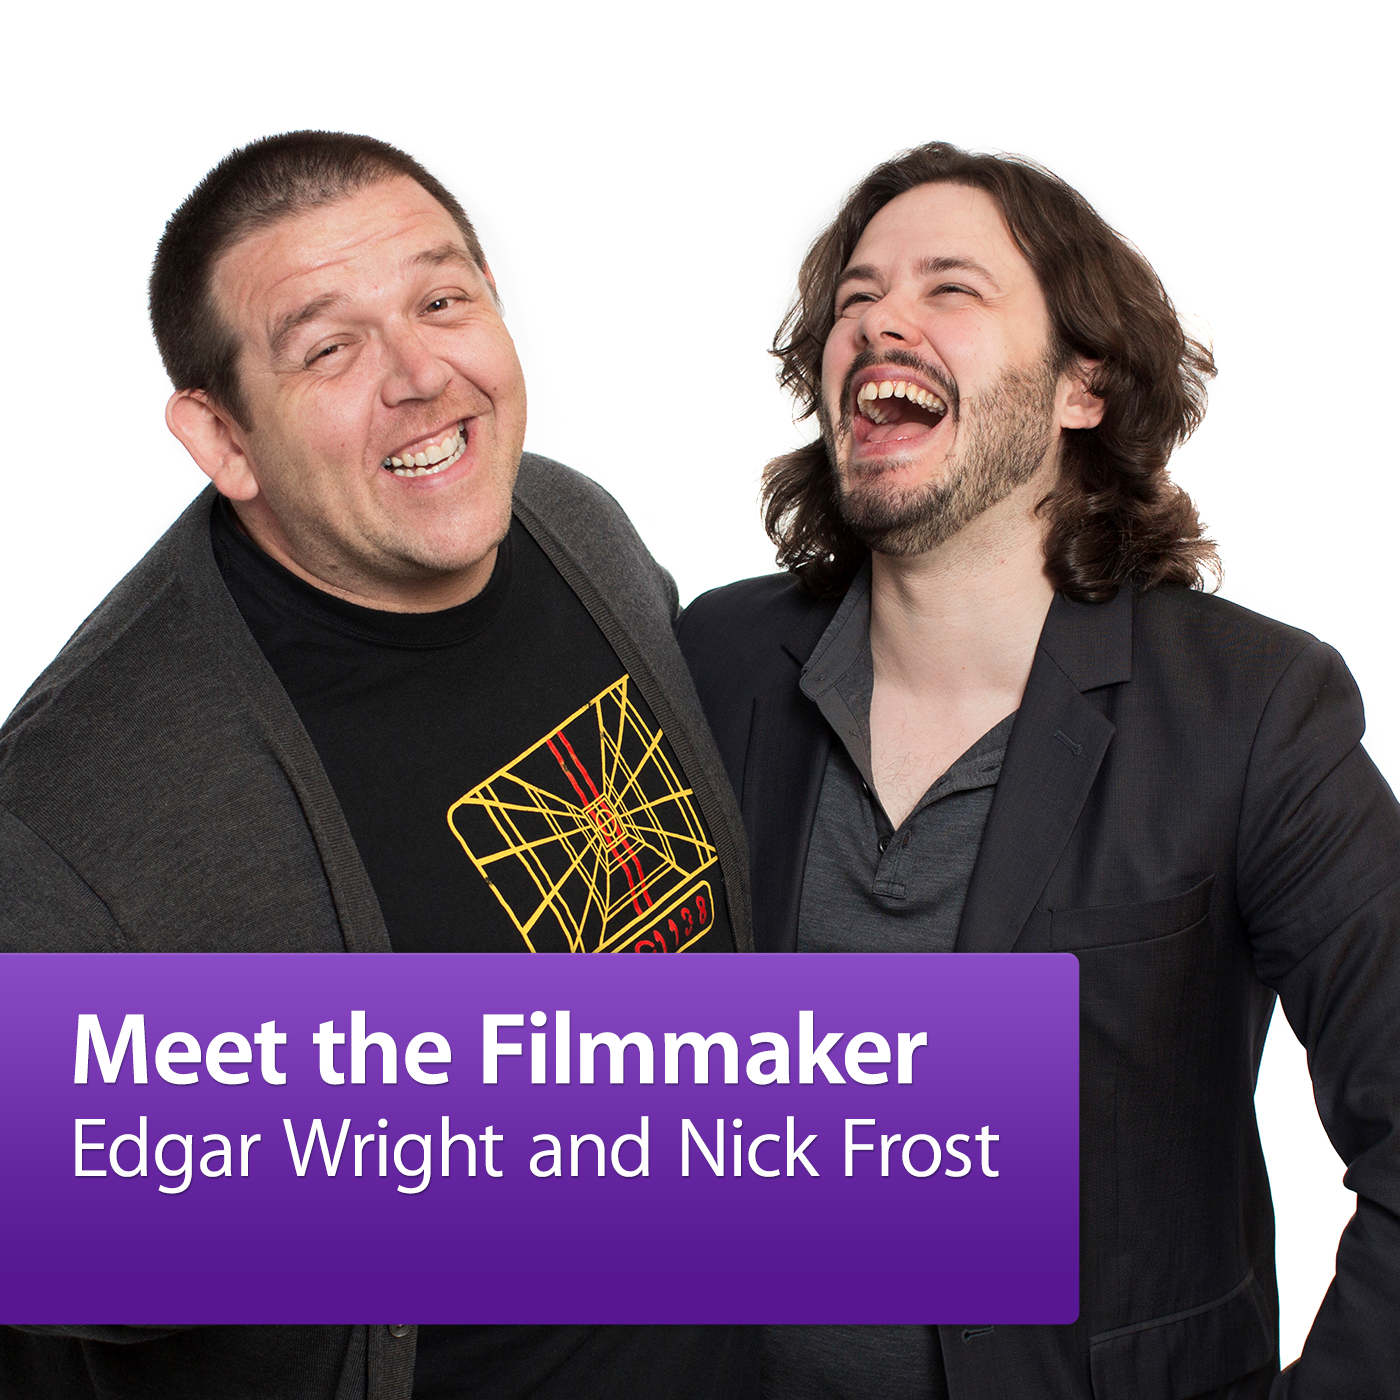 Edgar Wright and Nick Frost: Meet the Filmmaker